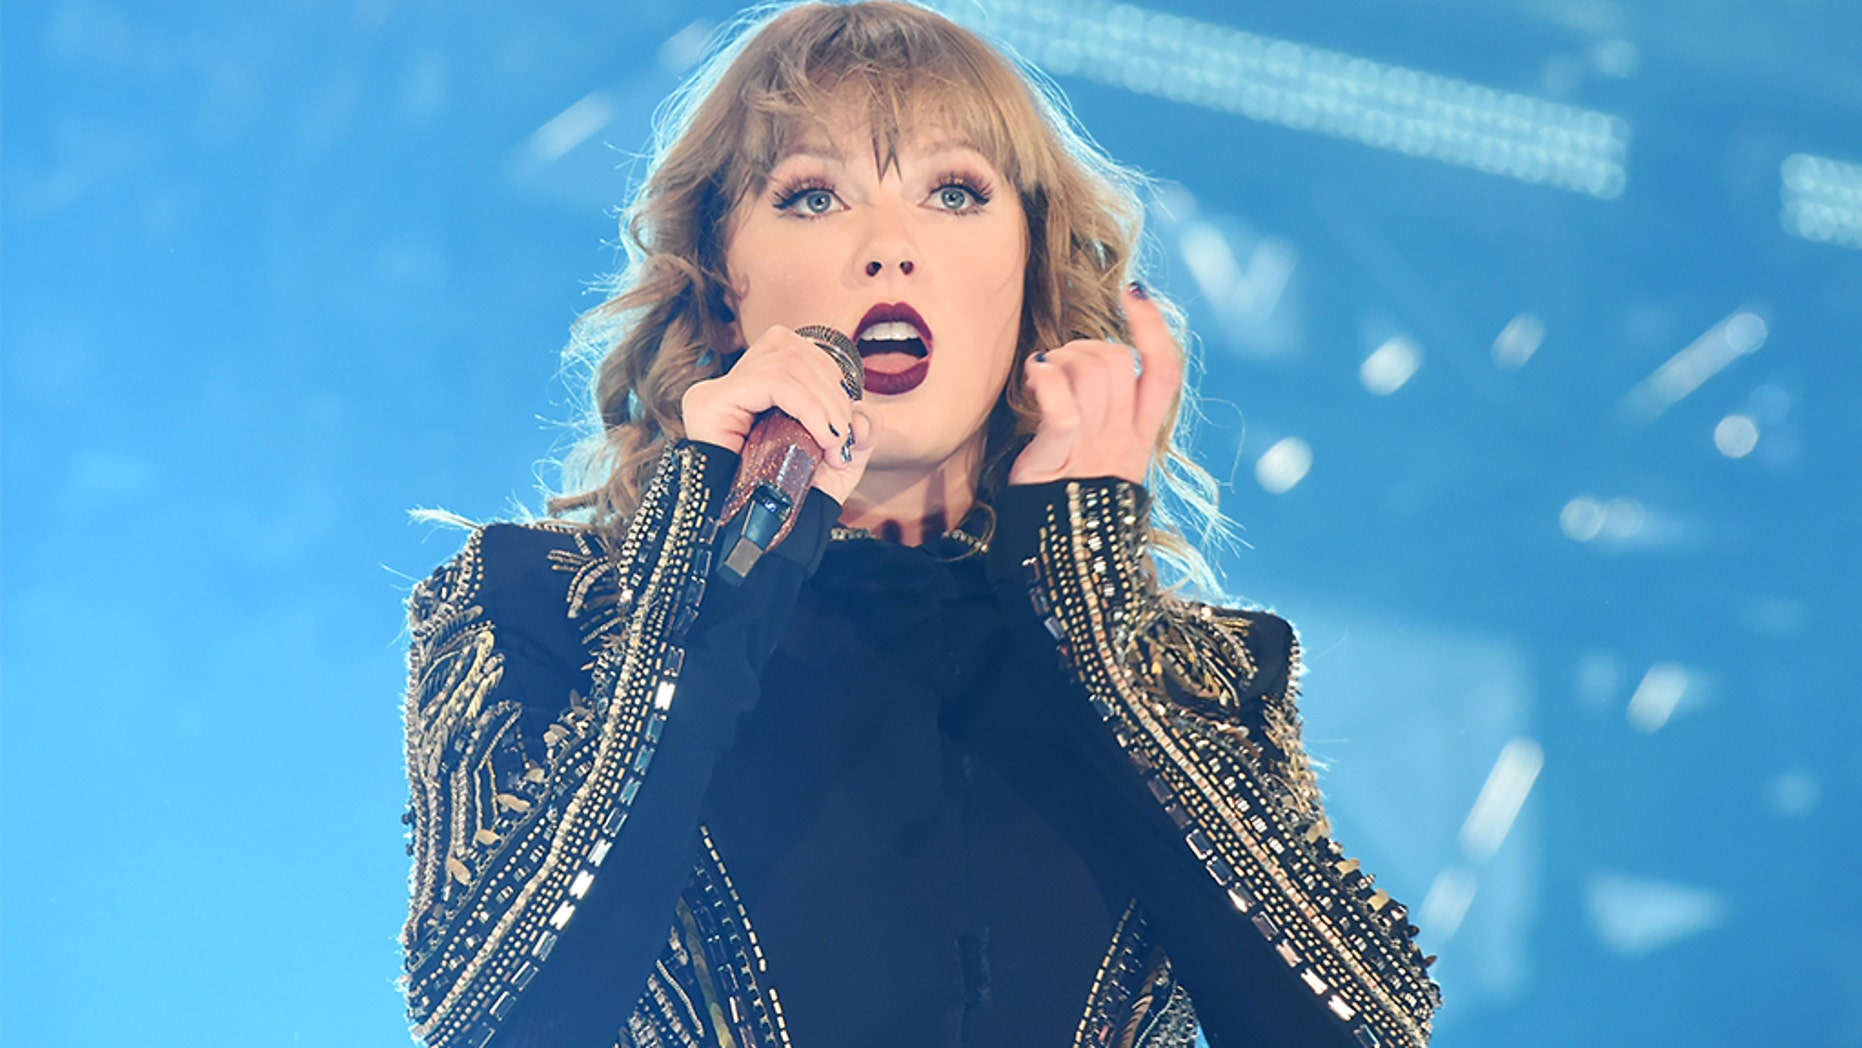 Taylor Swift Used Facial Recognition To Scan Her Stalkers At Concert